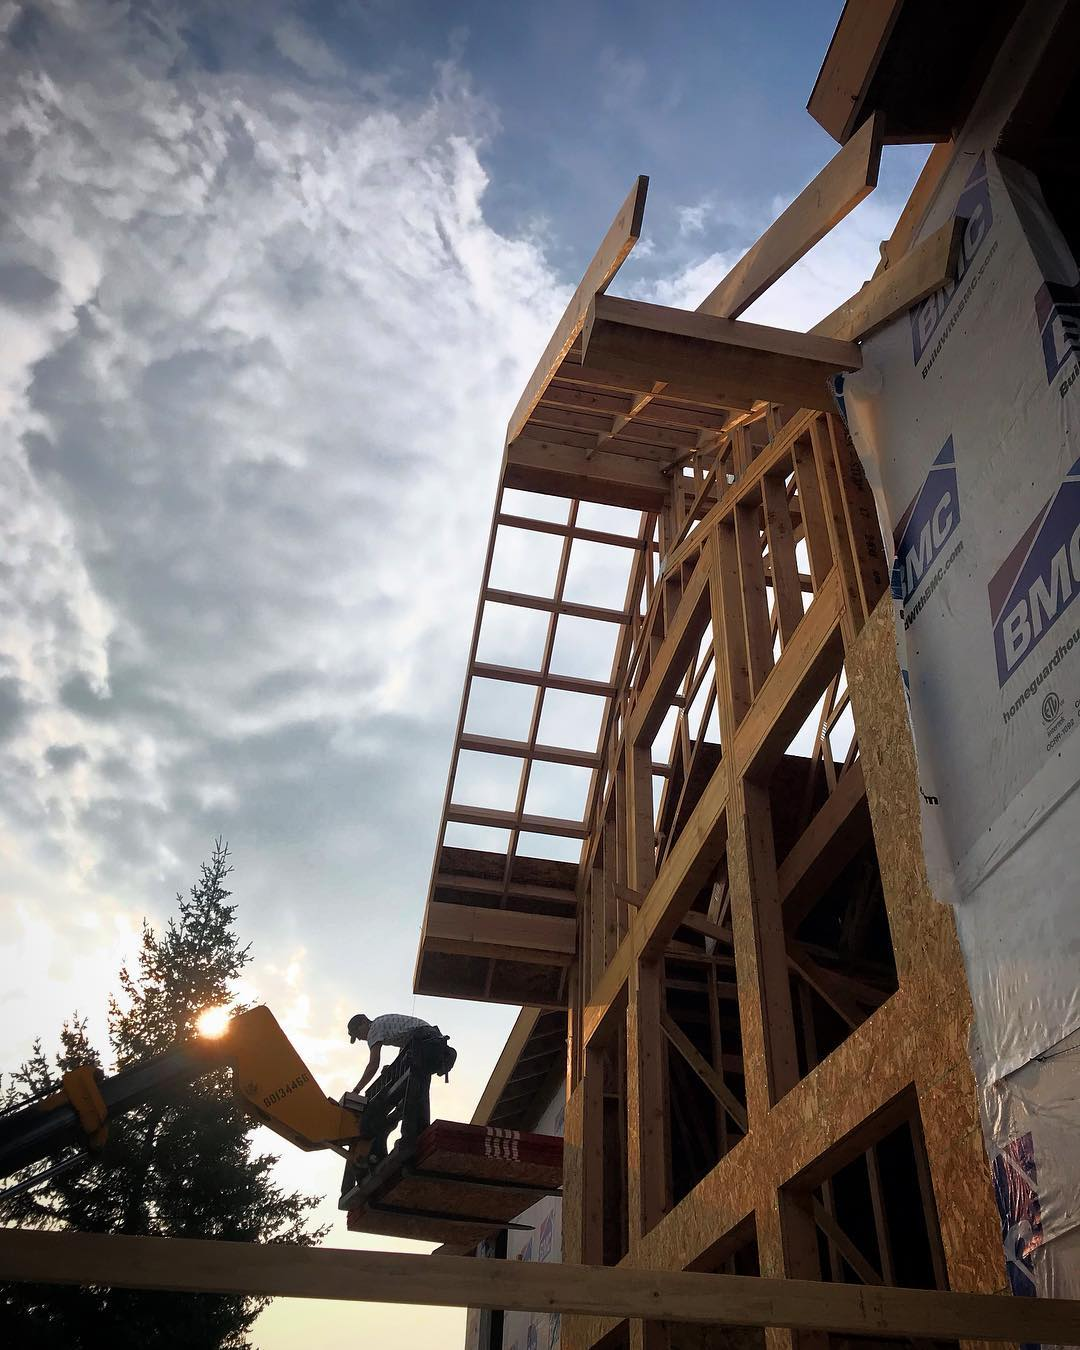 Good morning!! And yes, that's sun and blue sky peaking through the smoke!! whitefish custom home builder